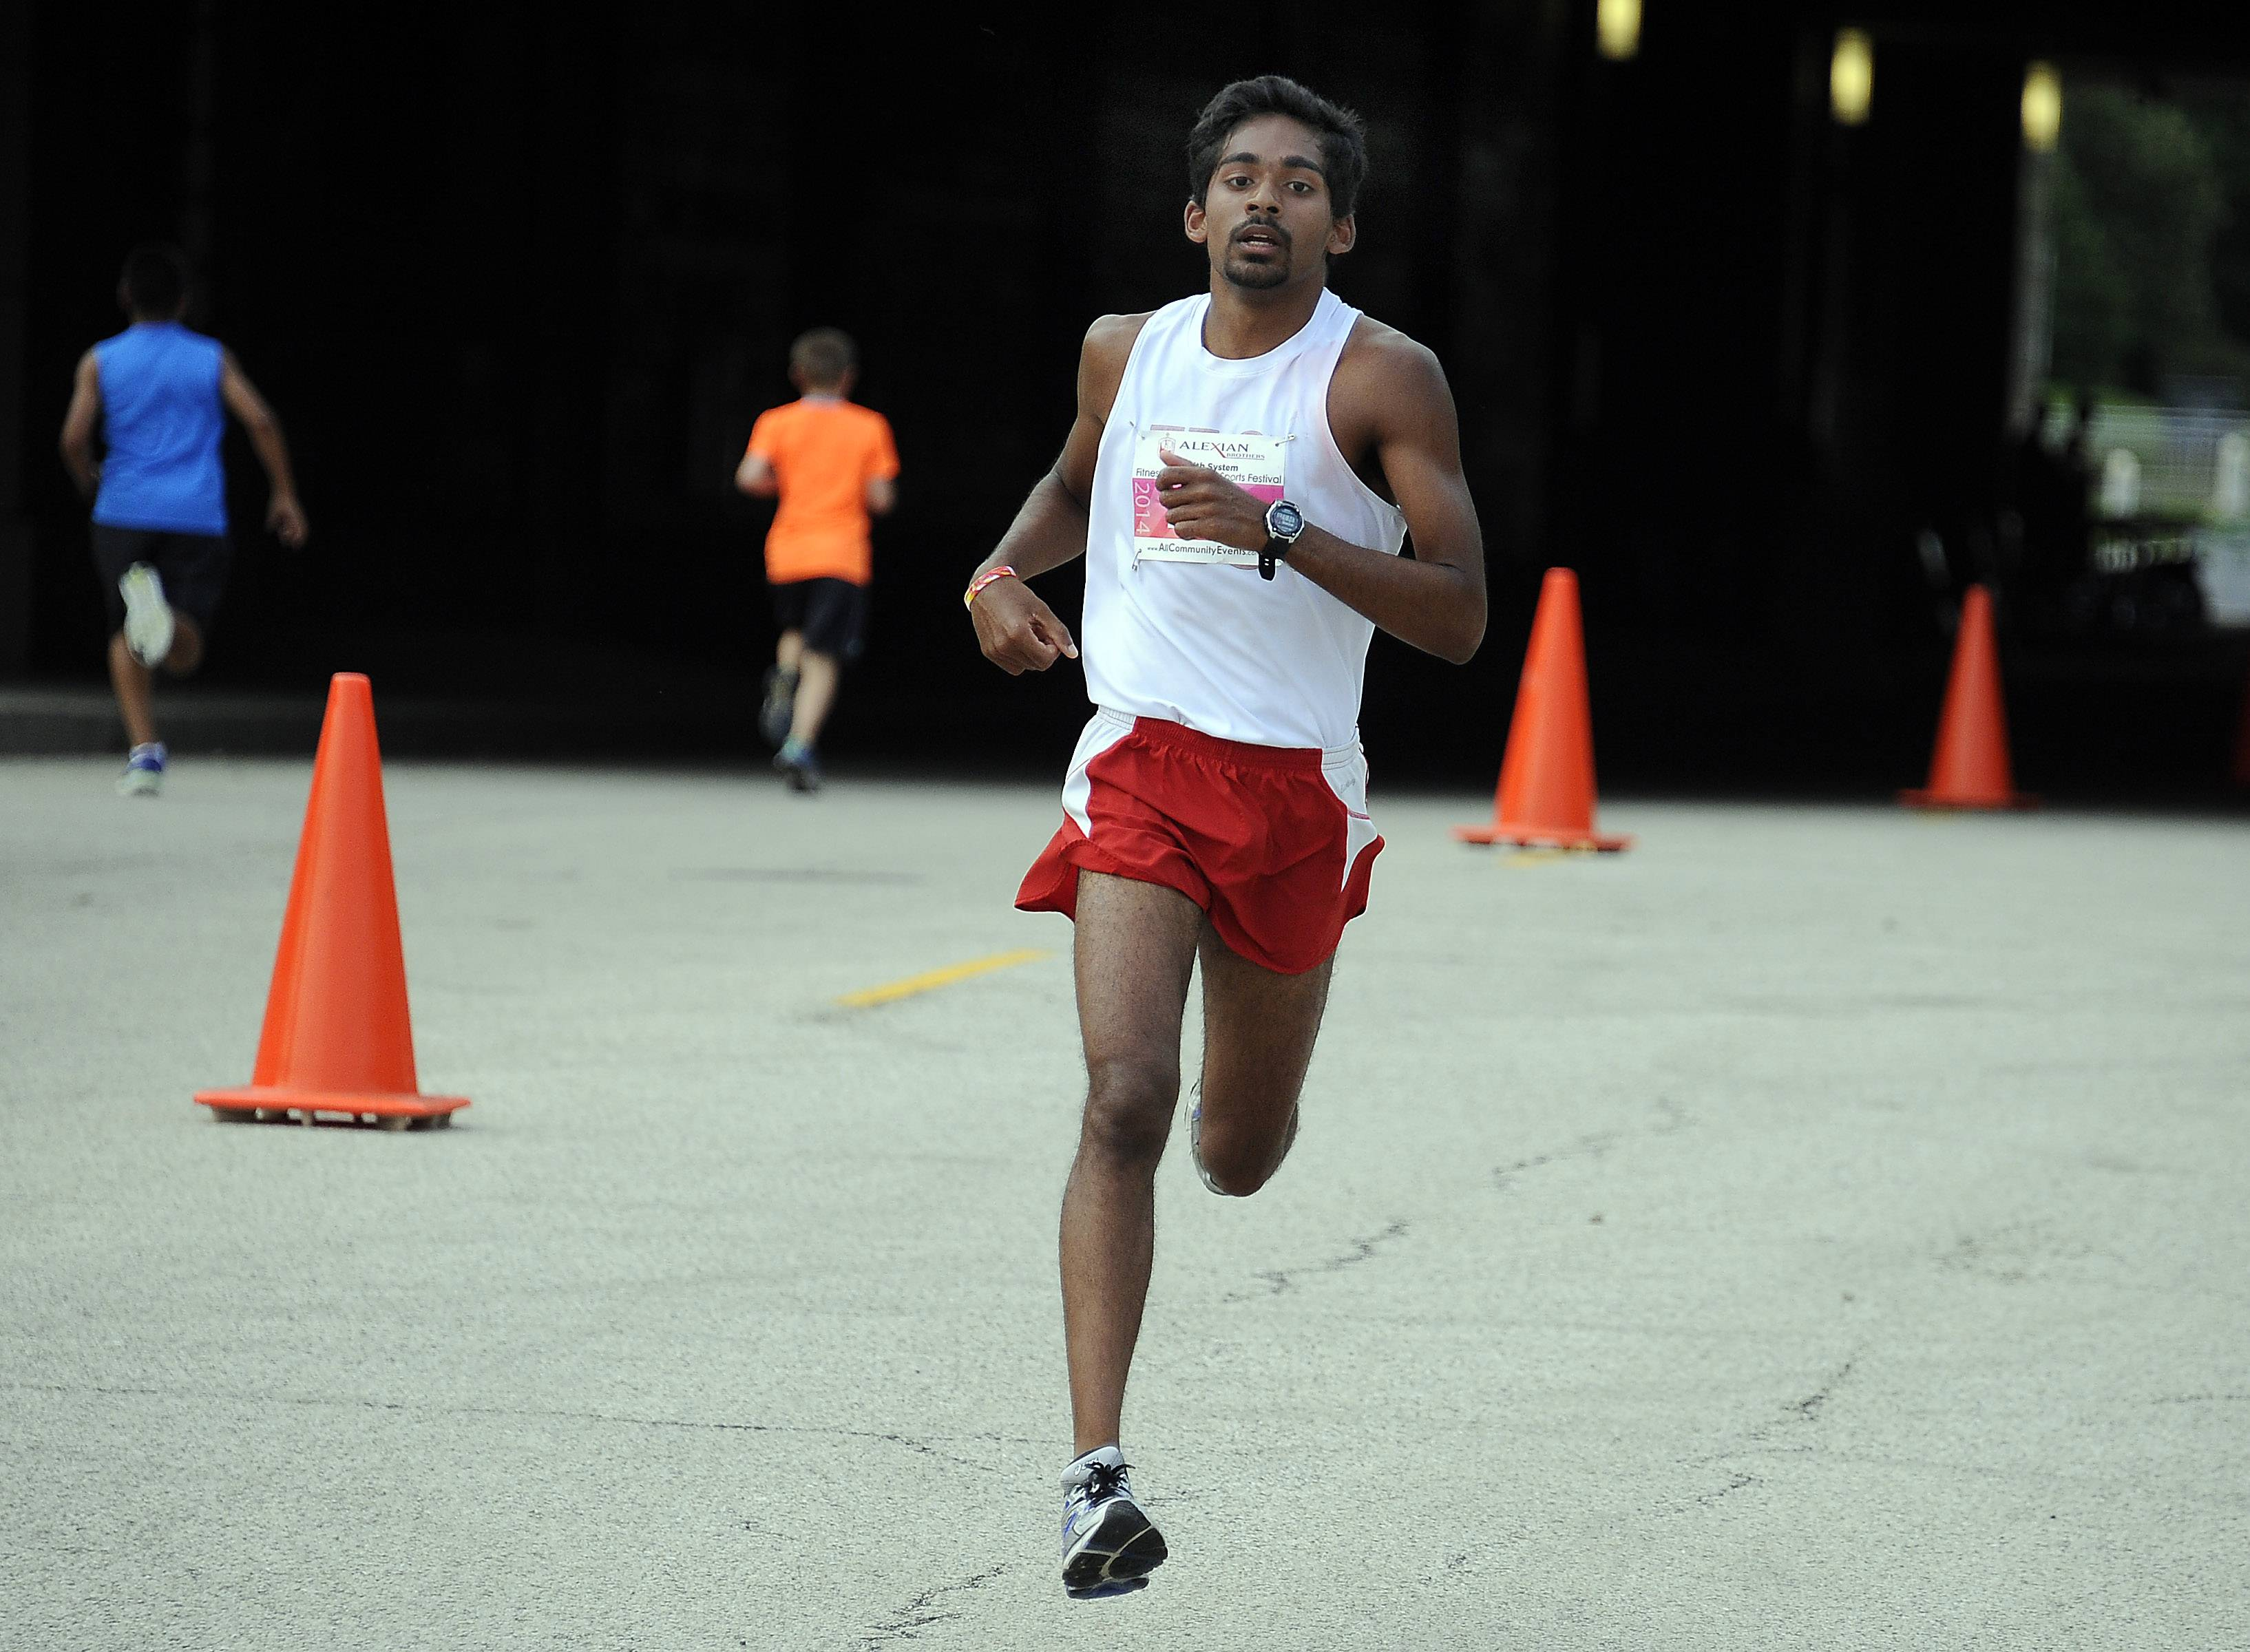 Andrew Philipose of Mount Prospect finishes first in the 10K race at the sixth annual Alexian Brothers Fitness for America Sports Festival half marathon race Saturday in Hoffman Estates.